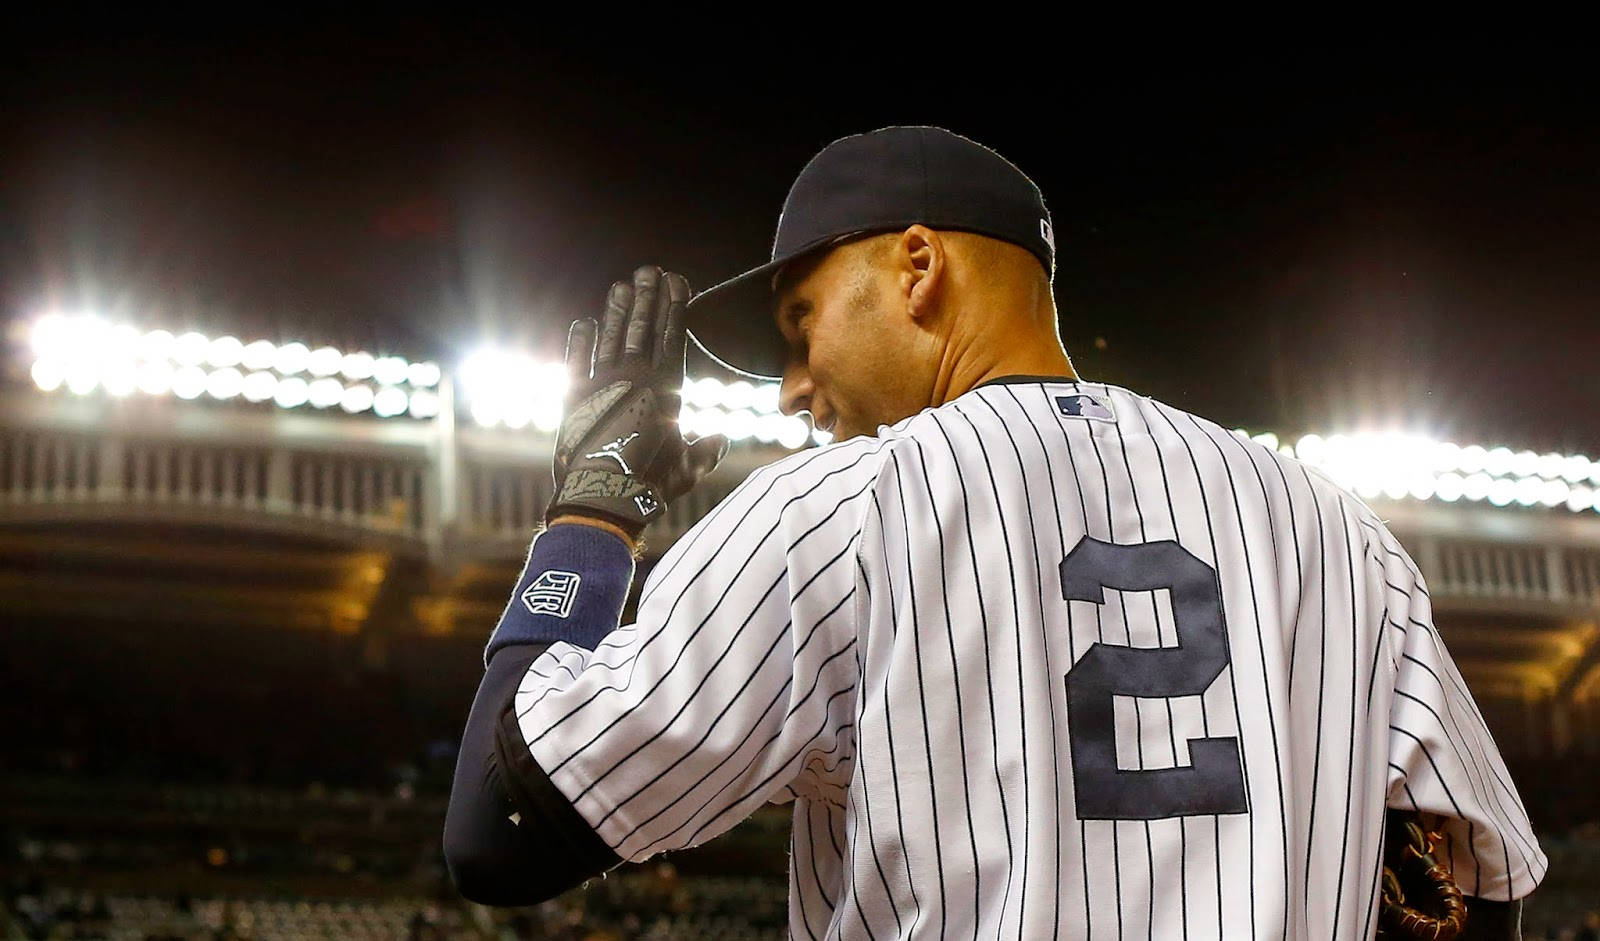 Top Selling Jersey in baseball Goes to Derek Jeter's No. 2, Derek Jeter farewell, Derek Jeter last game